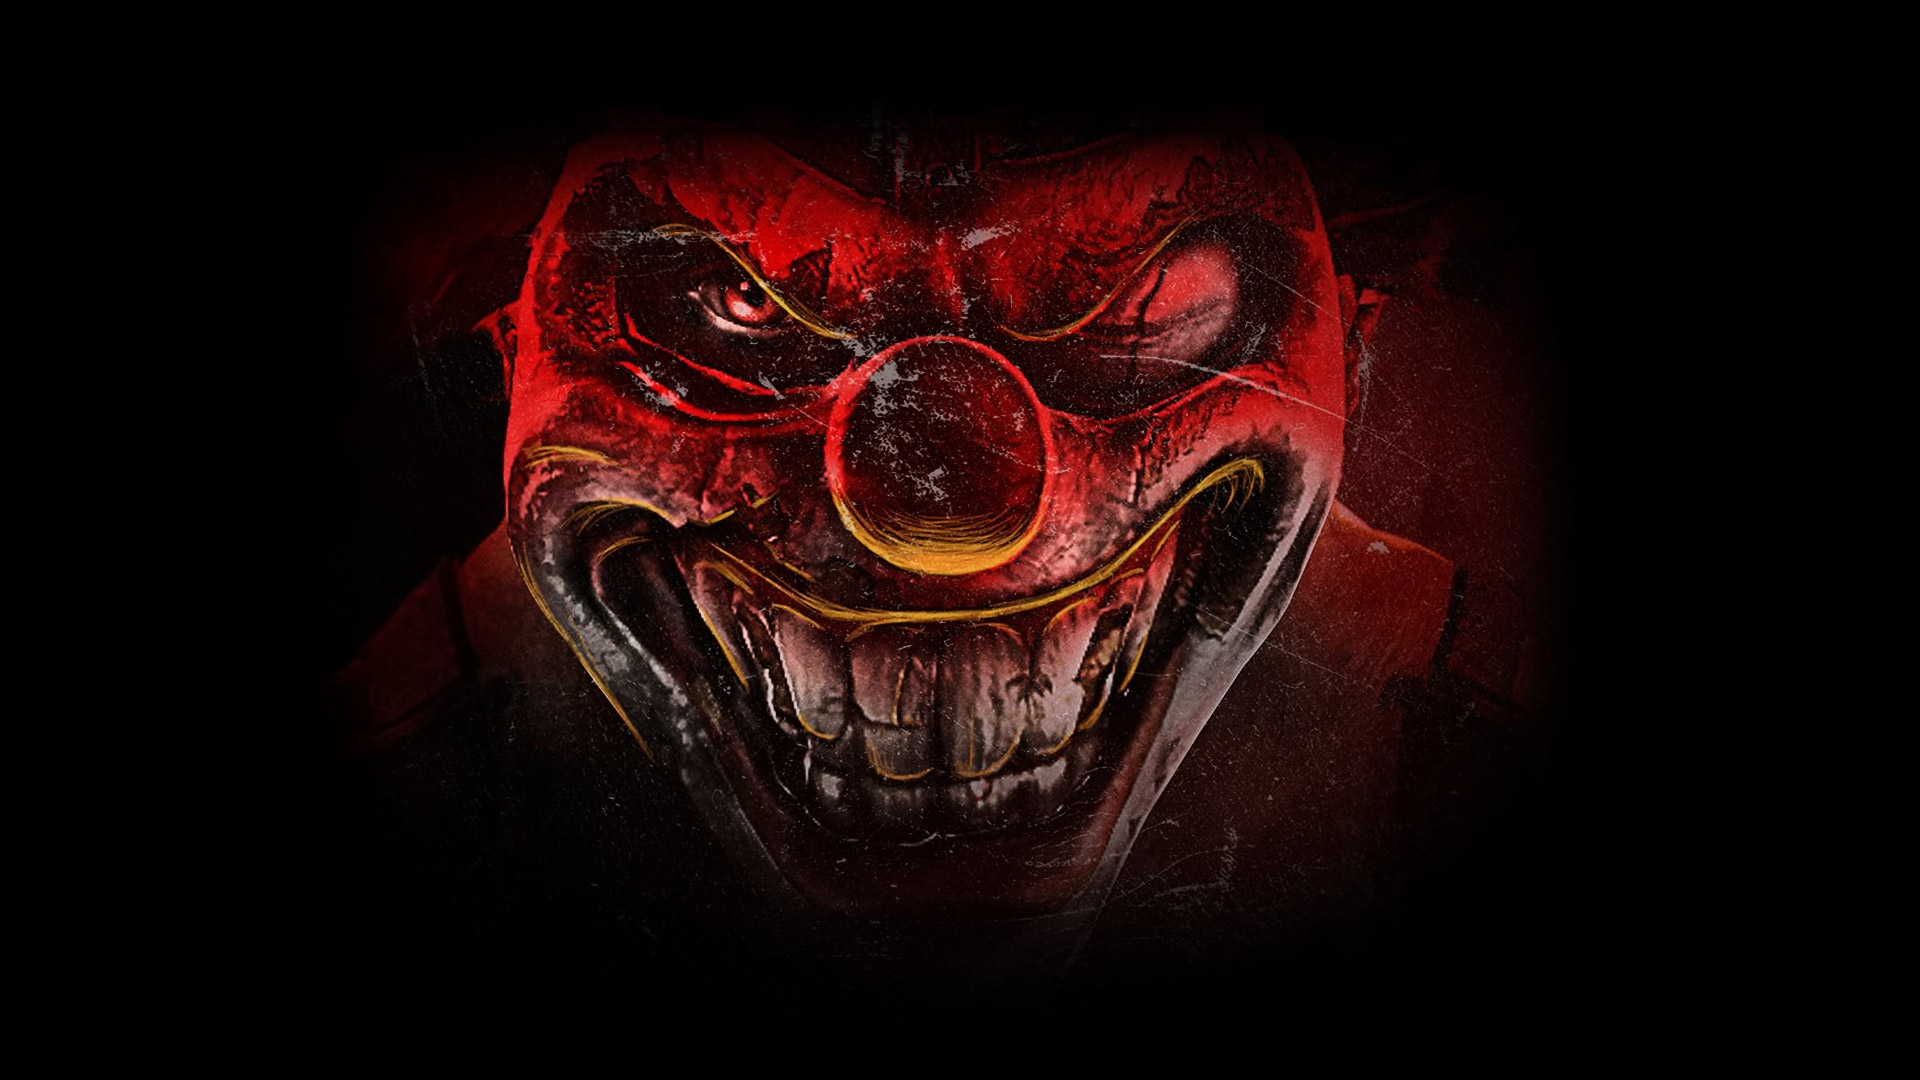 Twisted Metal Wallpaper